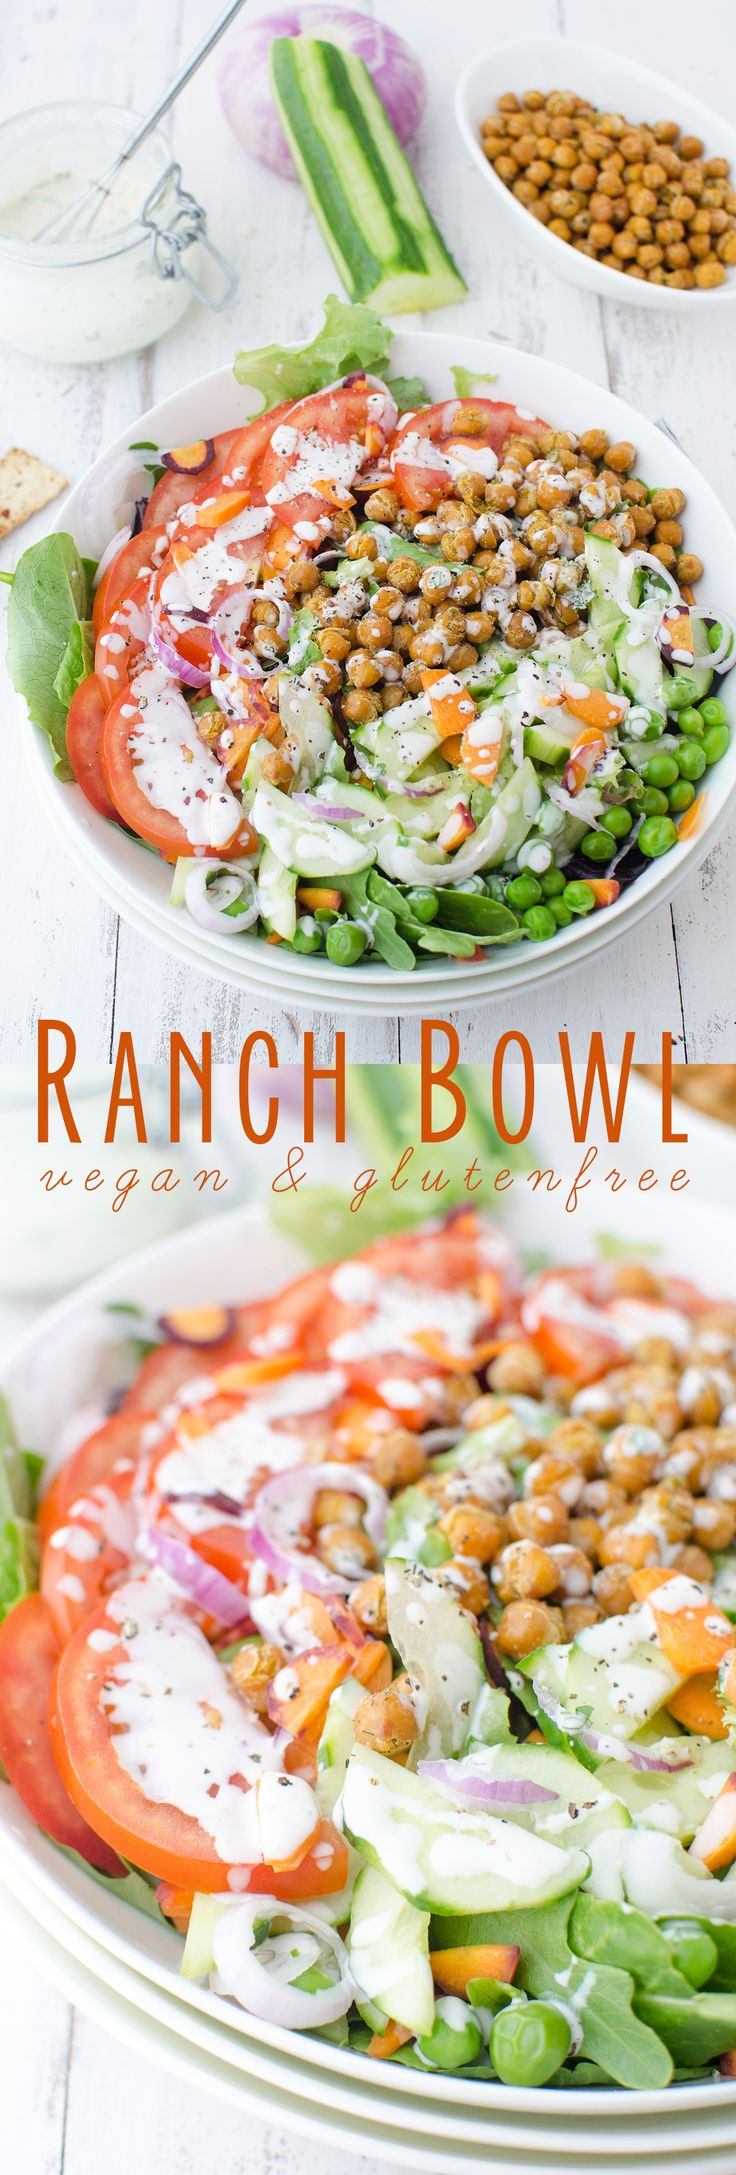 Vegan and Gluten Free Ranch Bowls! These salads bowls are packed with vegetables and ranch roasted chickpeas! 250 calories, 11g fiber, 12g protein.   www.delishknowledge.com